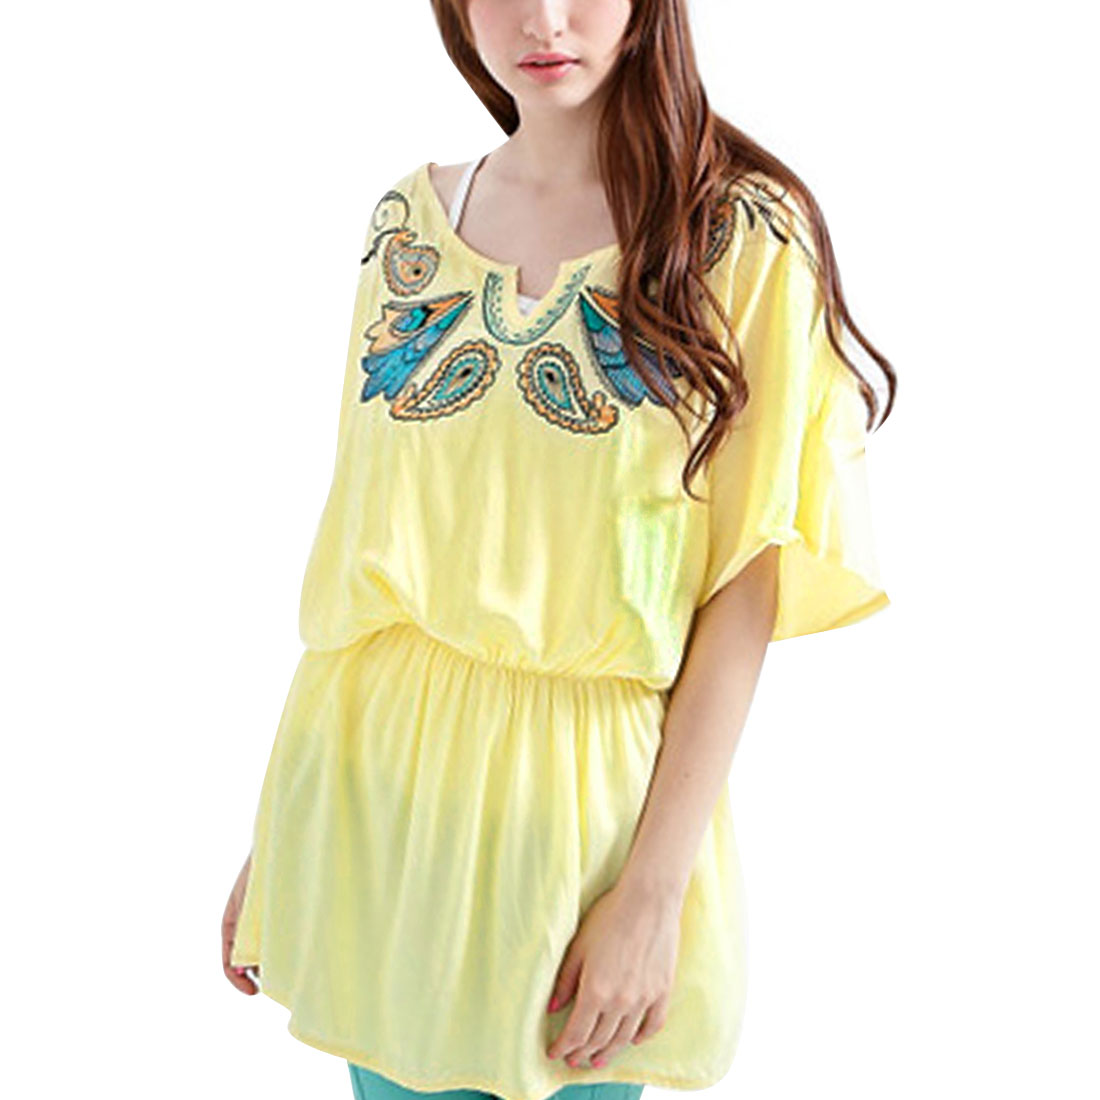 Ladies Dolman Elastic Waist Short-sleeved Tunic Shirts Light Yellow S